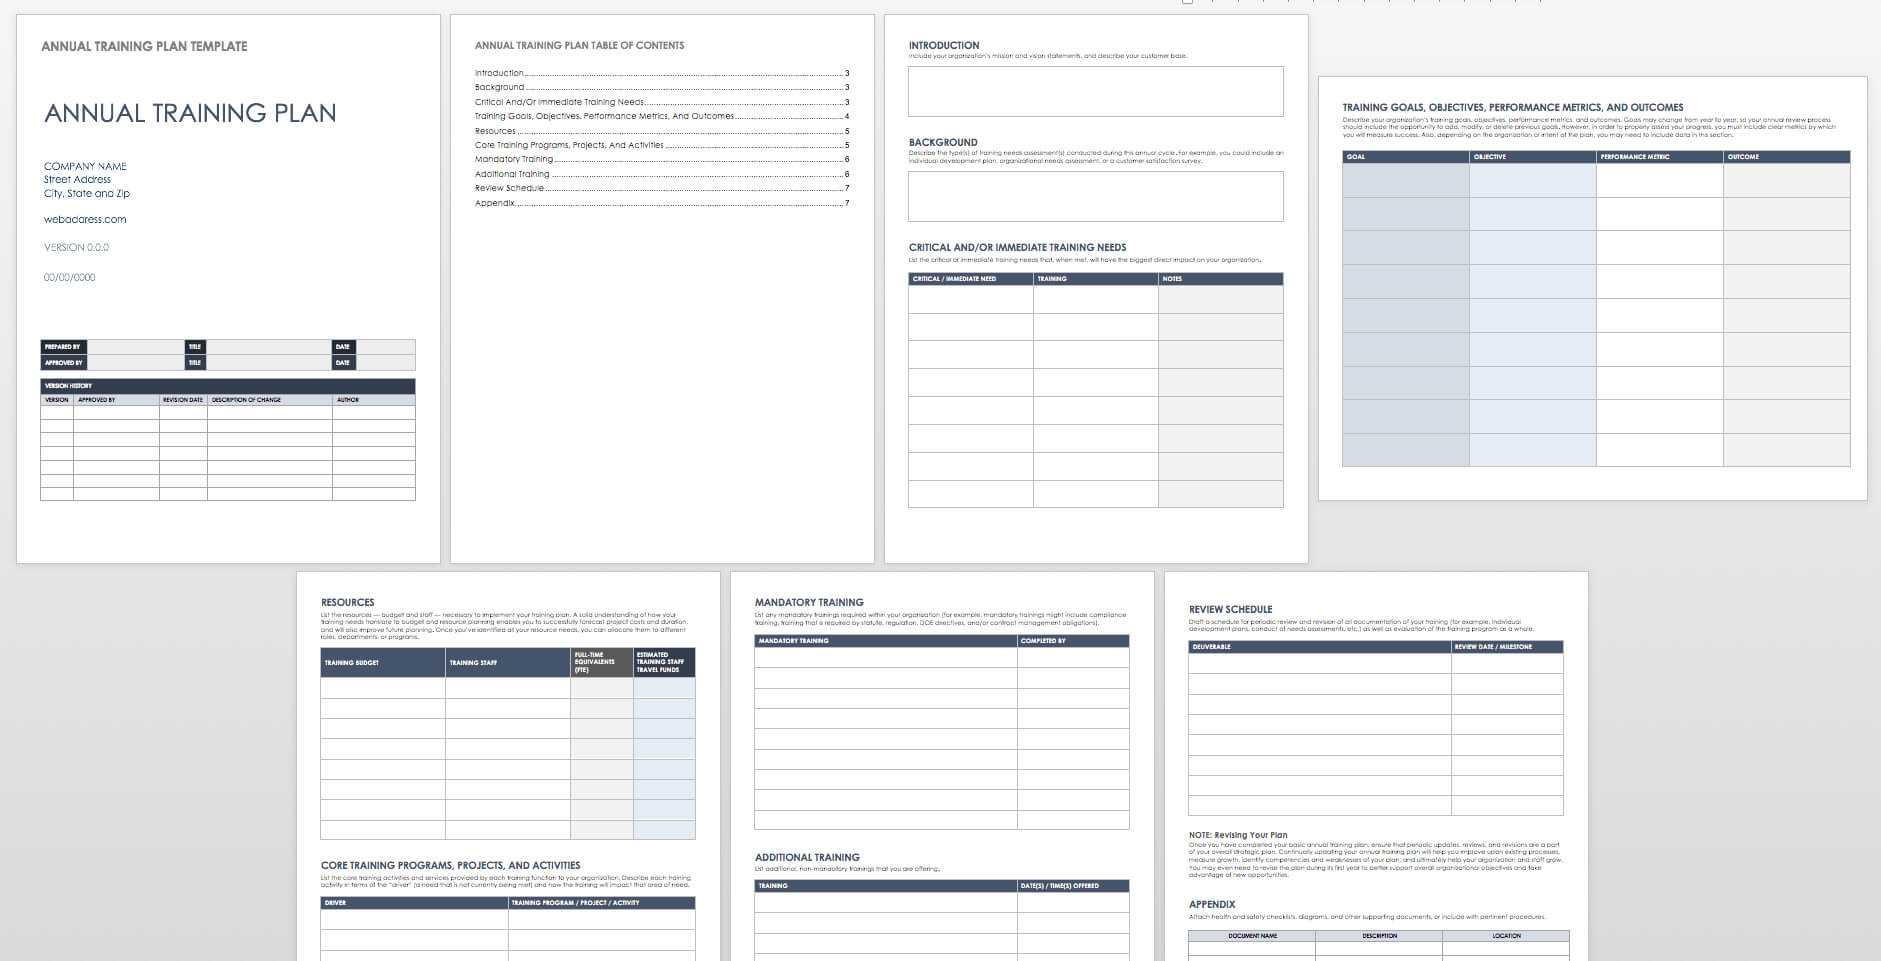 Free Training Plan Templates For Business Use | Smartsheet Regarding Training Documentation Template Word